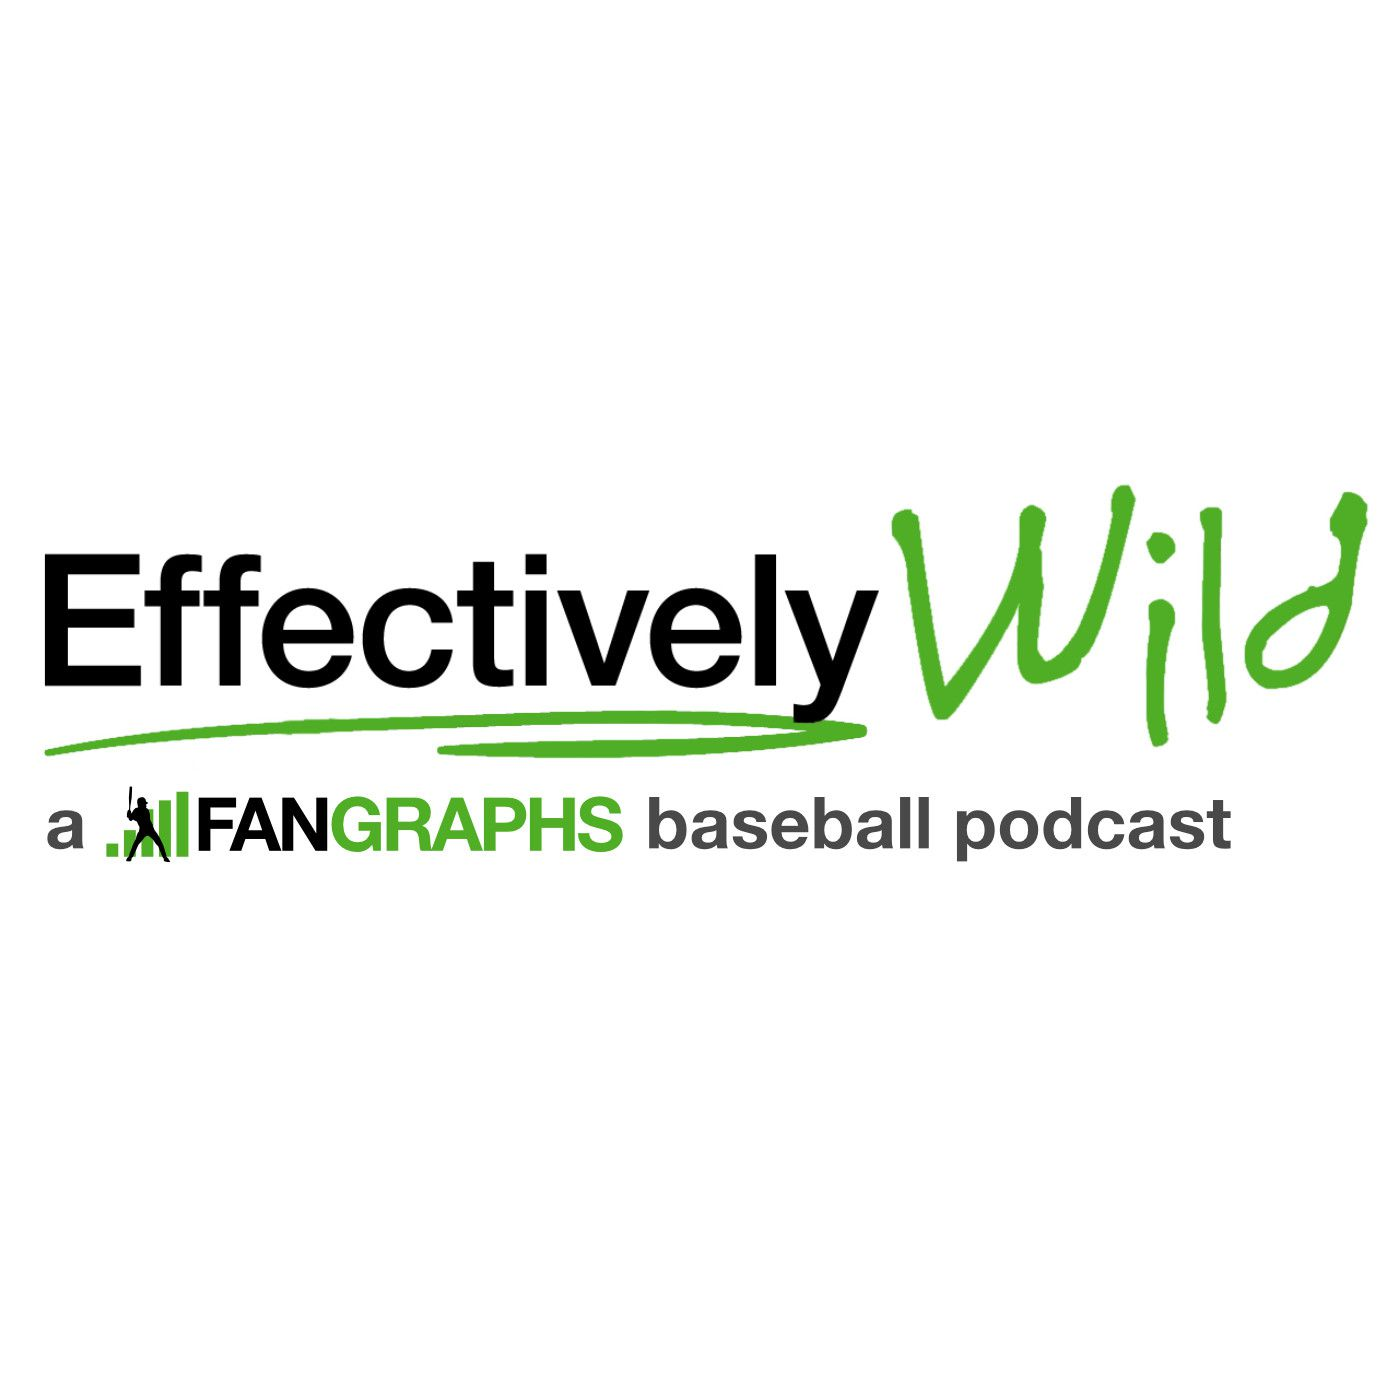 The Effectively Wild podcast logo